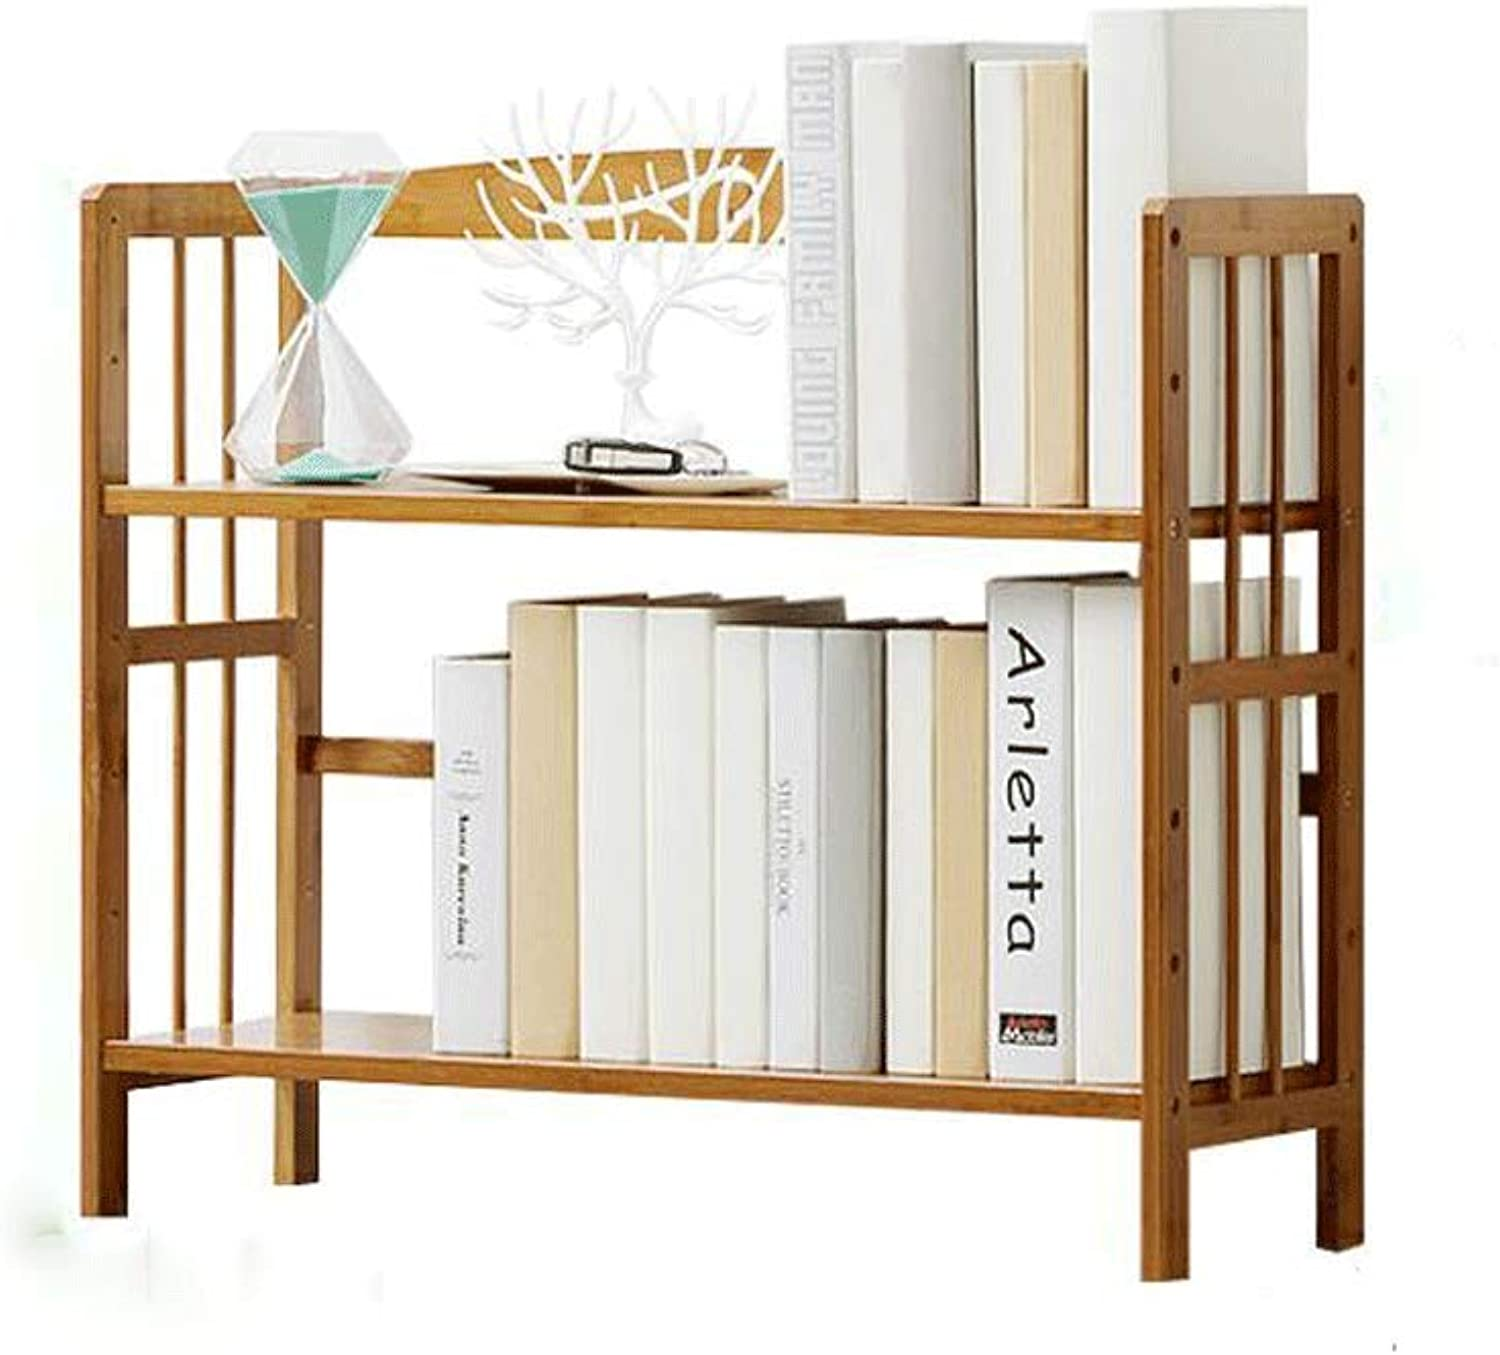 KTYXDE Wrought Iron Bookshelf Books Miscellaneous Lockers Simple Bookcase Display Rack Storage Rack 70x60x25cm Bookshelf